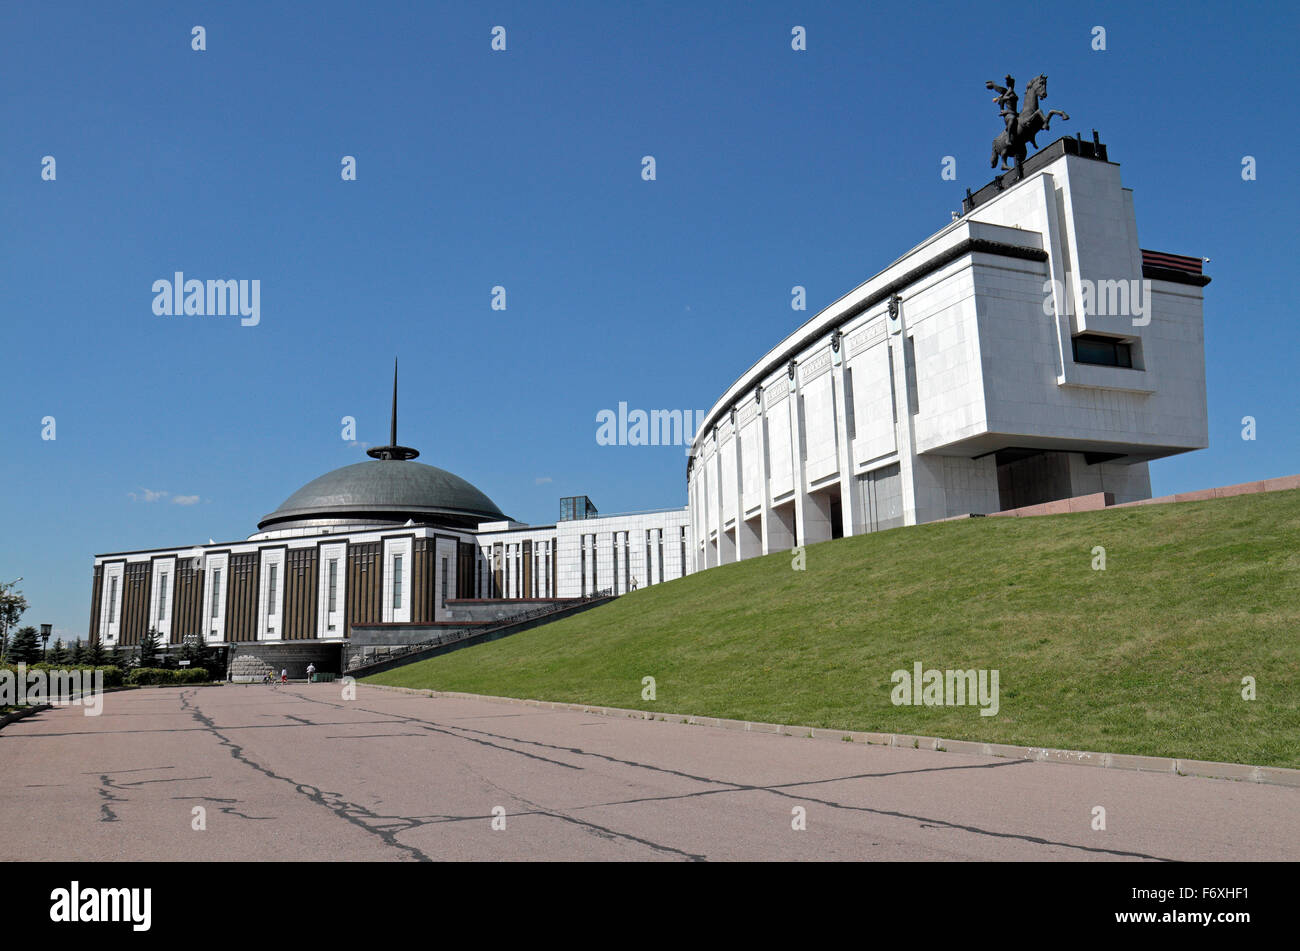 The Museum of the Great Patriotic War, Park Pobedy (Victory Park), Moscow Russia. - Stock Image